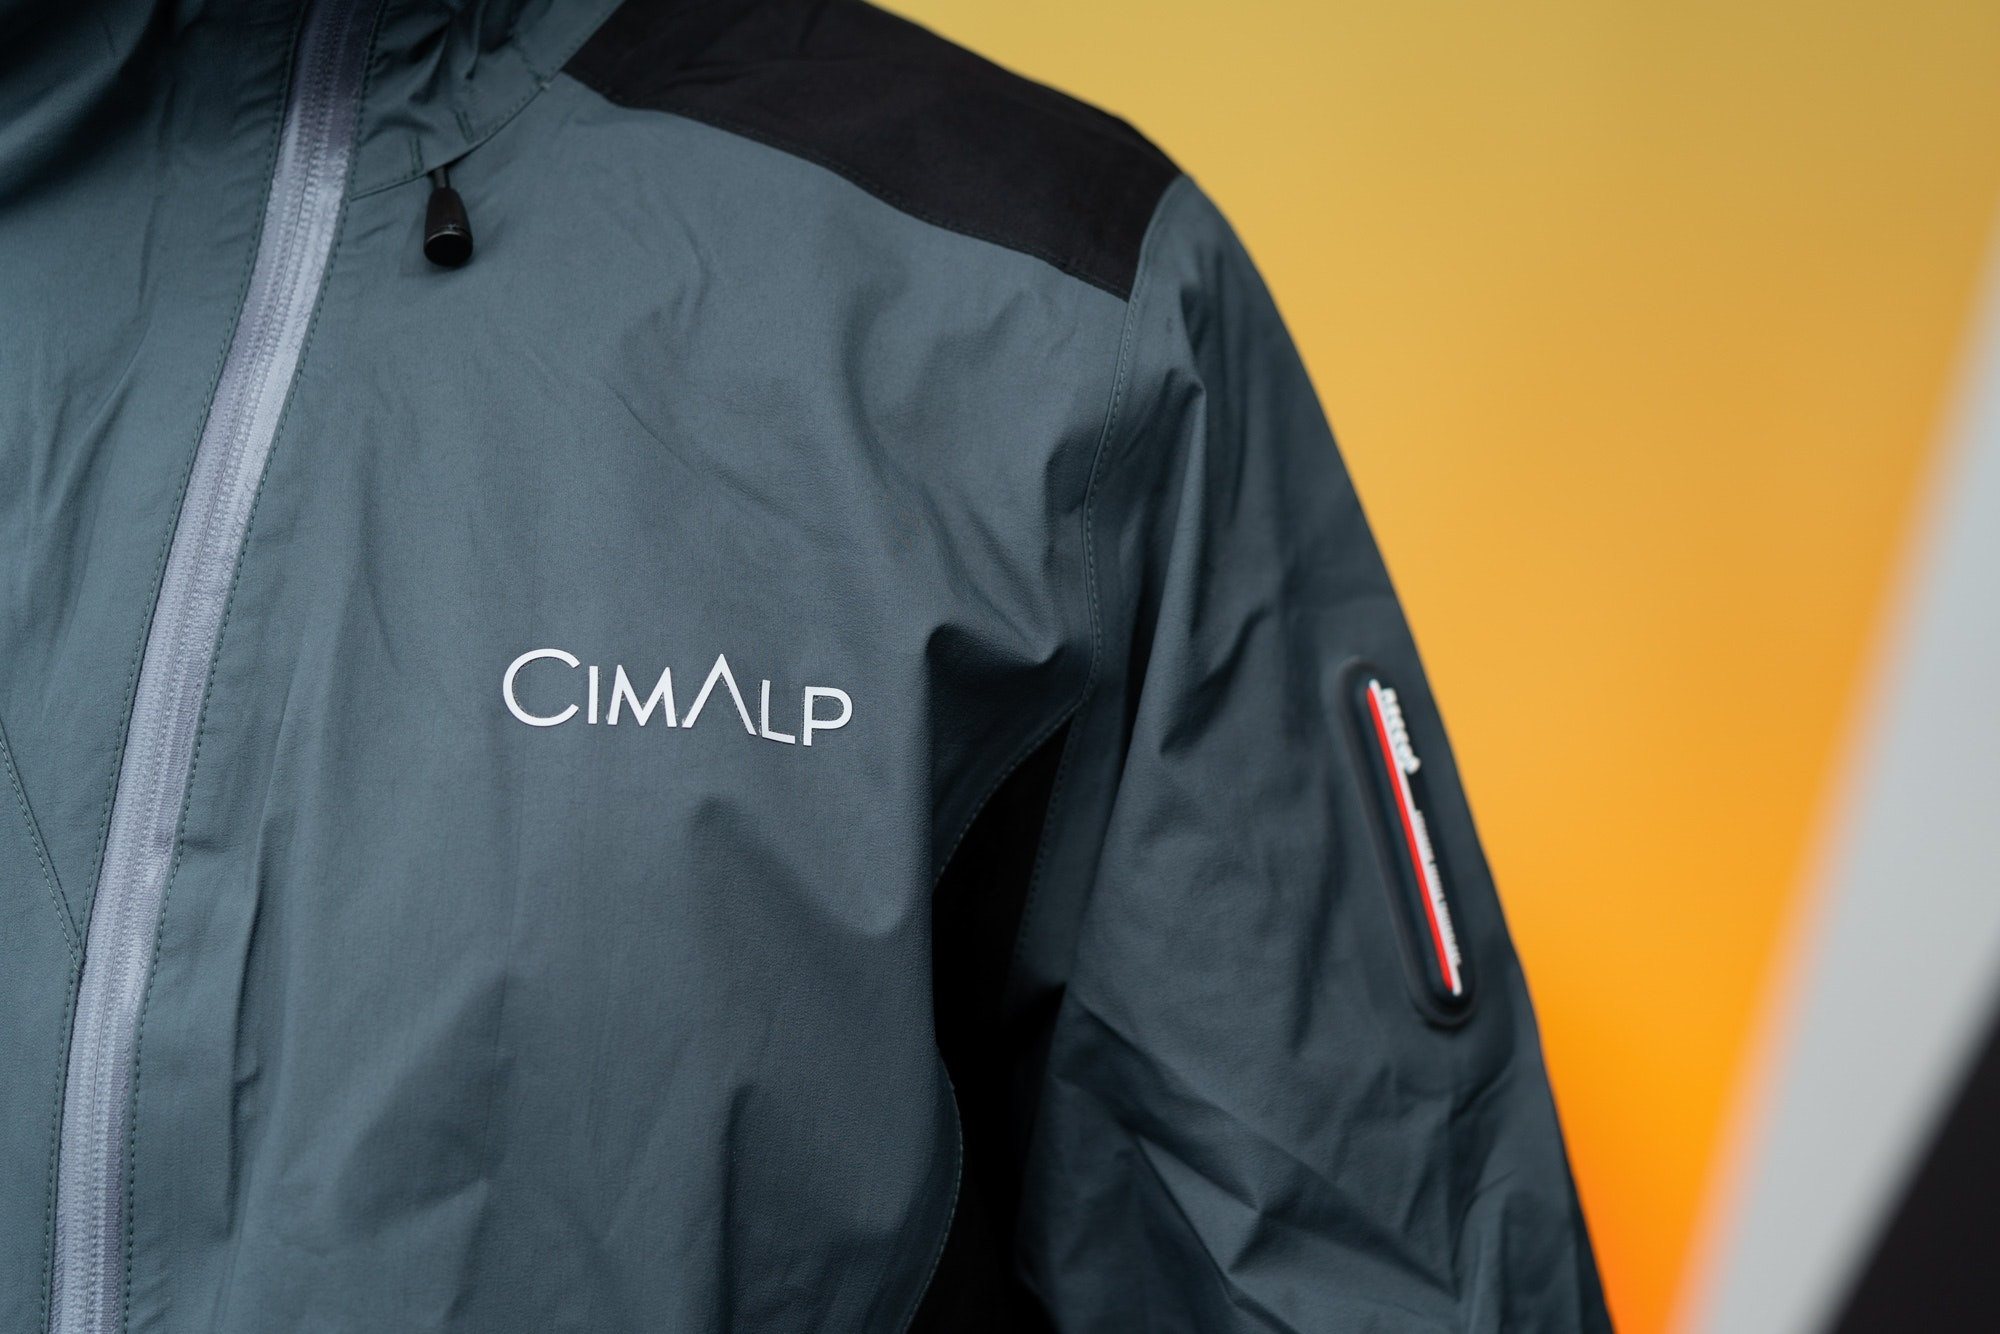 CimAlp Advanced 2H Jacket | Review